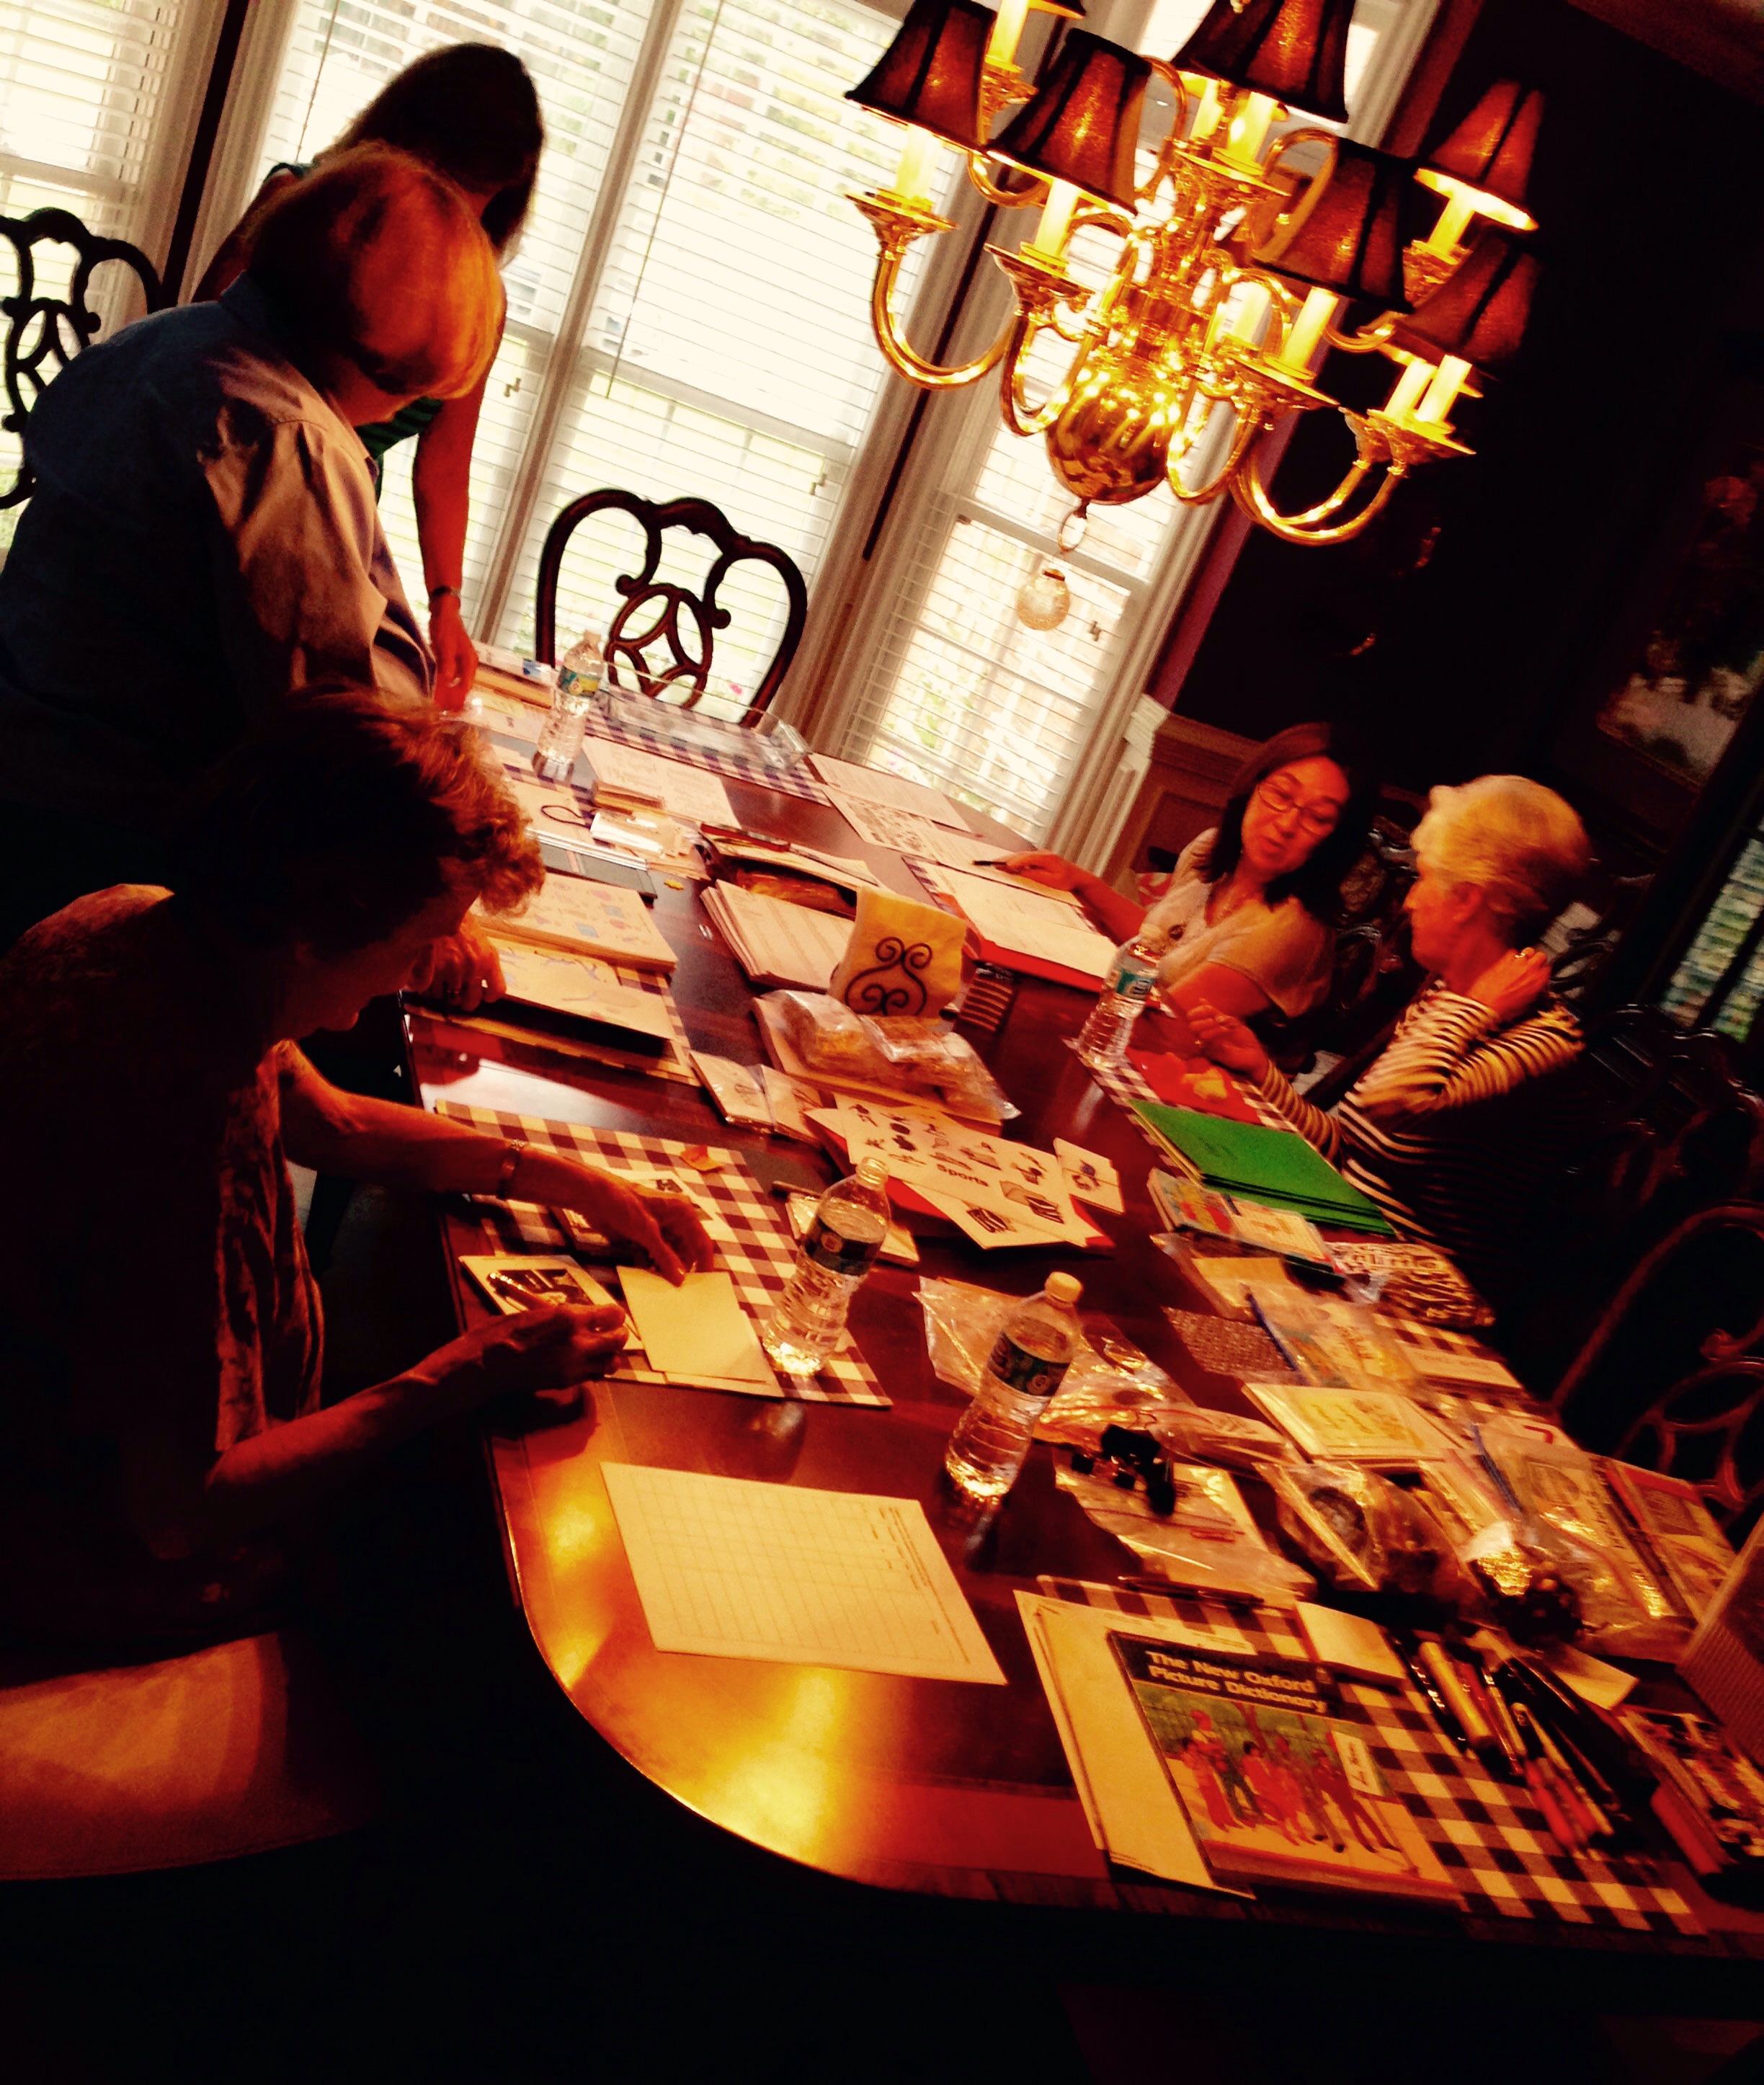 The women were putting image flash cards together for the classes.